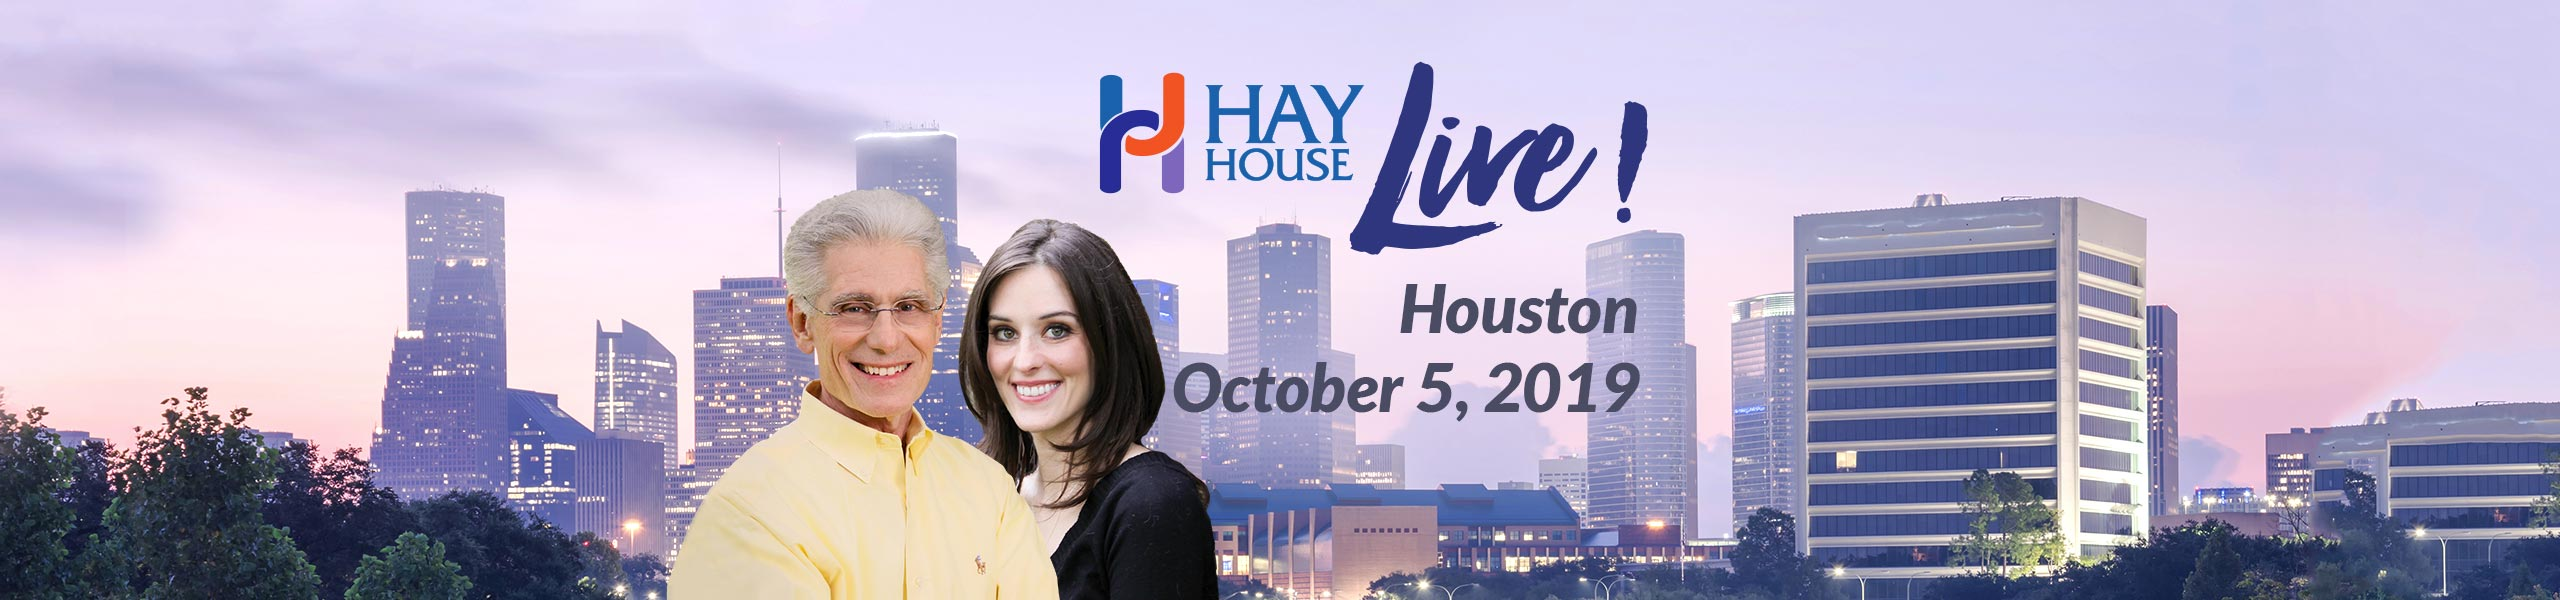 Hay House Live! Houston 2019 - Brian Weiss M.D. and Amy Weiss